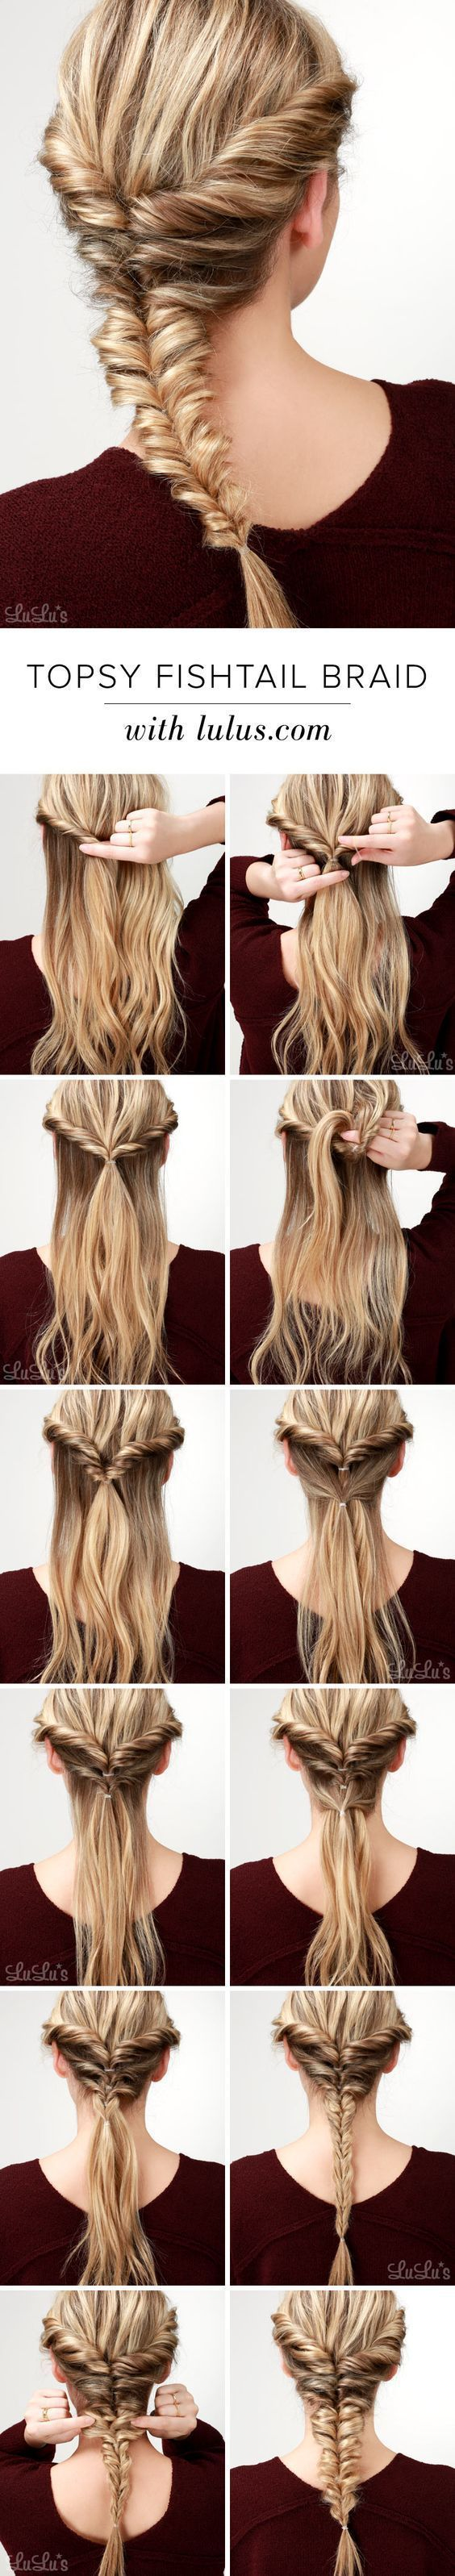 cool 100 Super Easy DIY Braided Hairstyles for Wedding Tutorials by http://www.danazhairstyles.xyz/hair-tutorials/100-super-easy-diy-braided-hairstyles-for-wedding-tutorials-10/